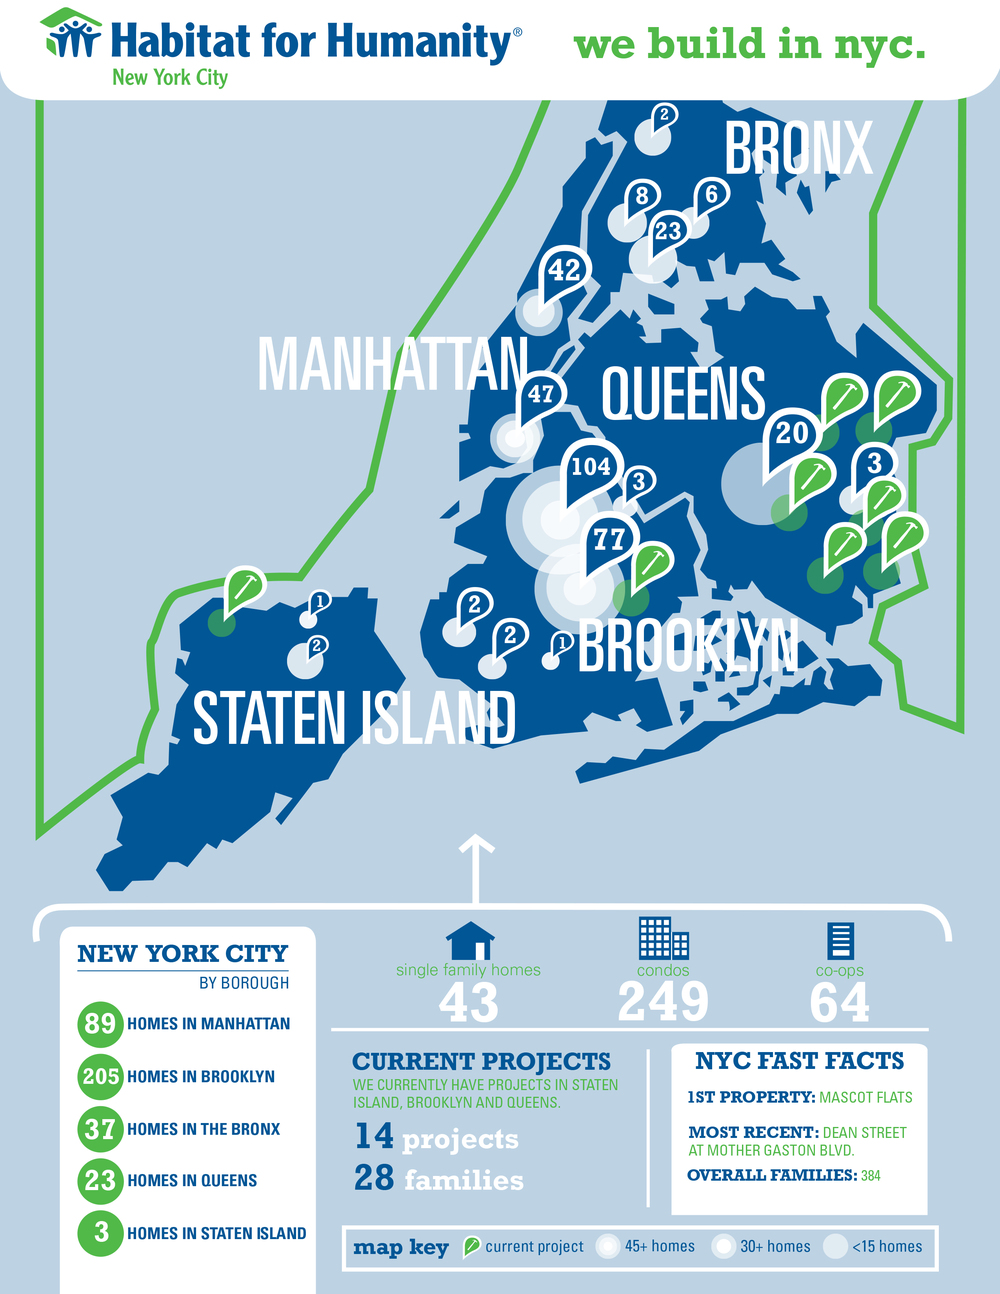 habitat-for-humanity-nyc-construction-map